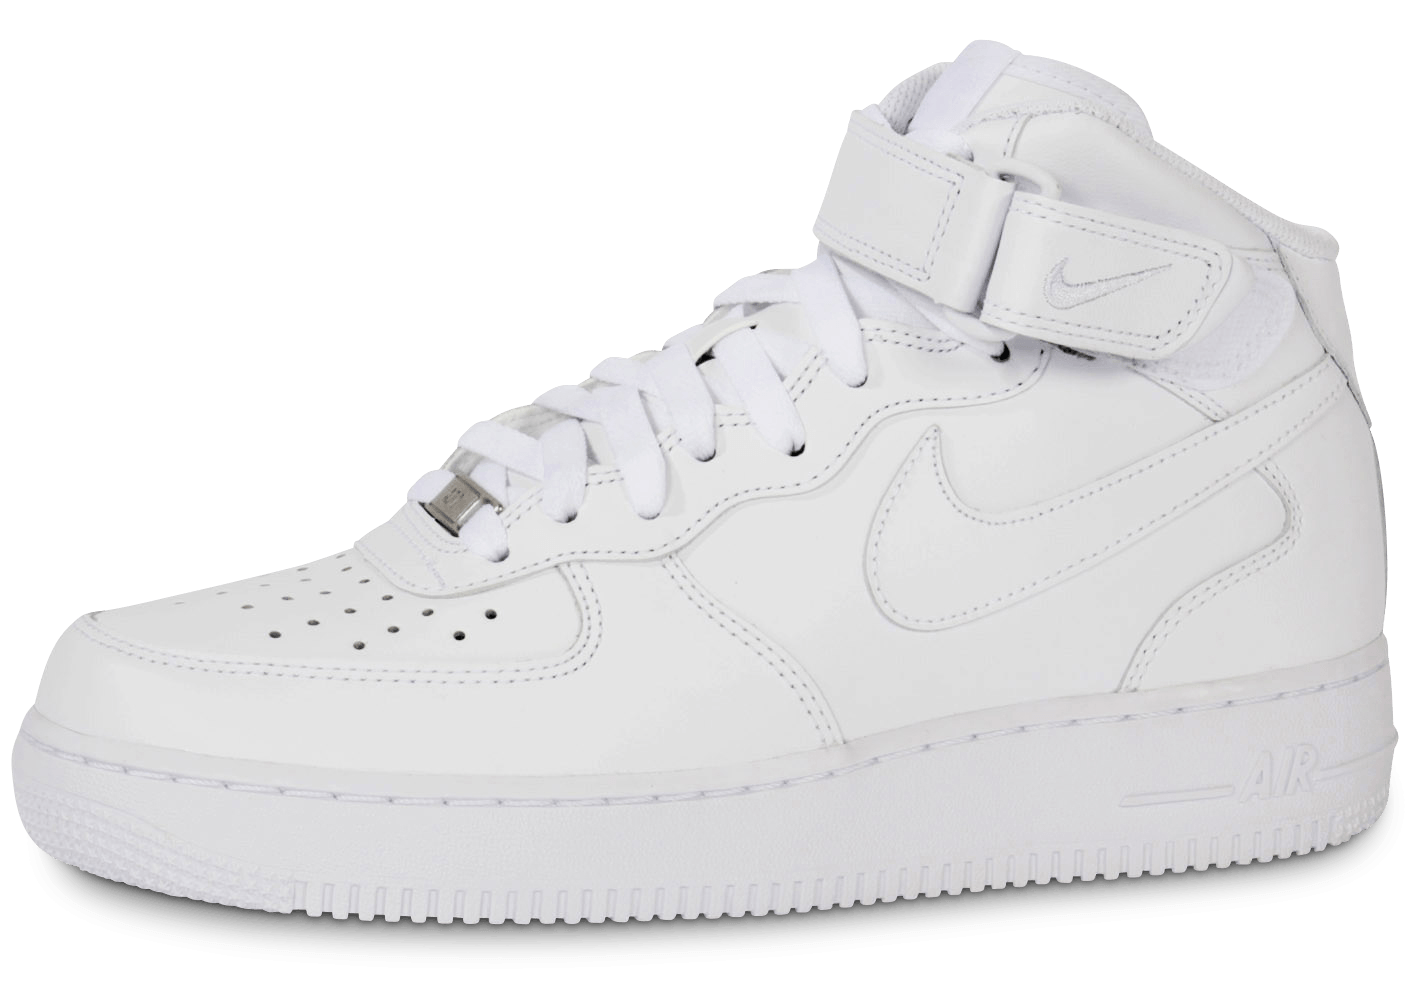 new styles f0e9c c06e8 Nike Air Force 1 Mid 07 Blanche - Chaussures Baskets homme -